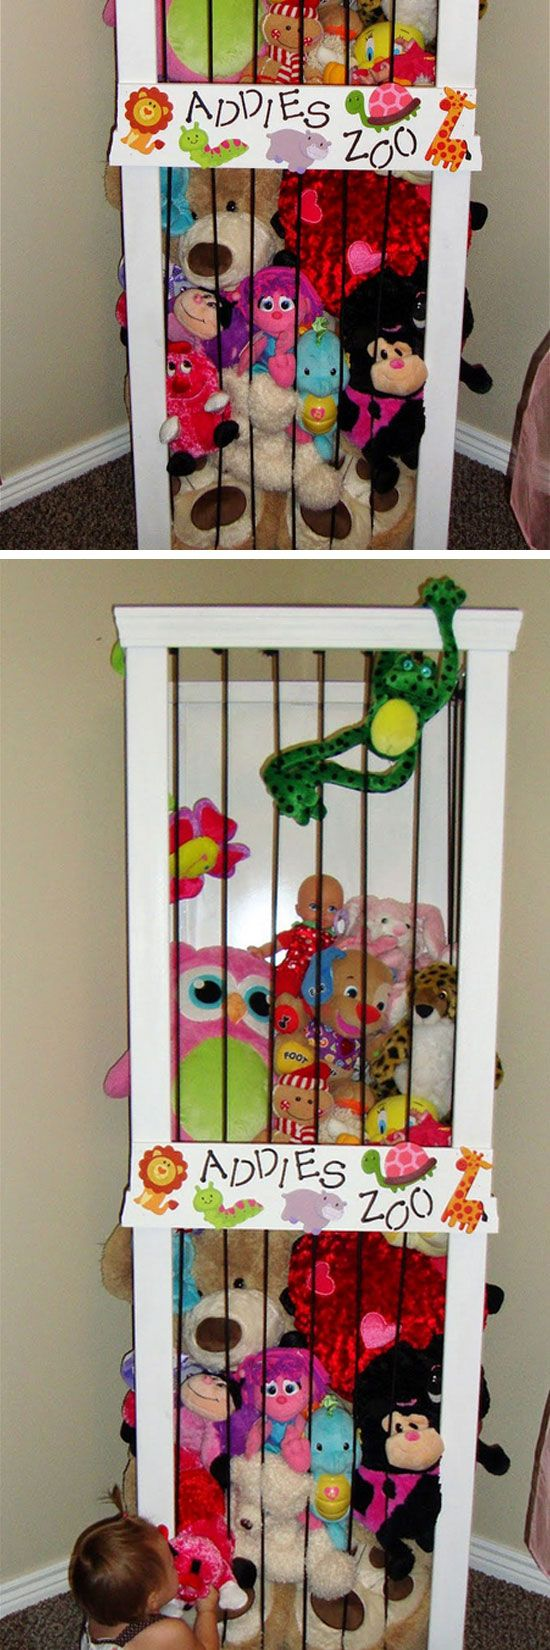 Stuffed Animal Zoo   DIY Toy Storage Ideas Dollar Stores   DIY Organization  Ideas for Kids36 best Storage Ideas images on Pinterest   Storage ideas  Diy  . Diy Organizing Ideas For Bedrooms. Home Design Ideas